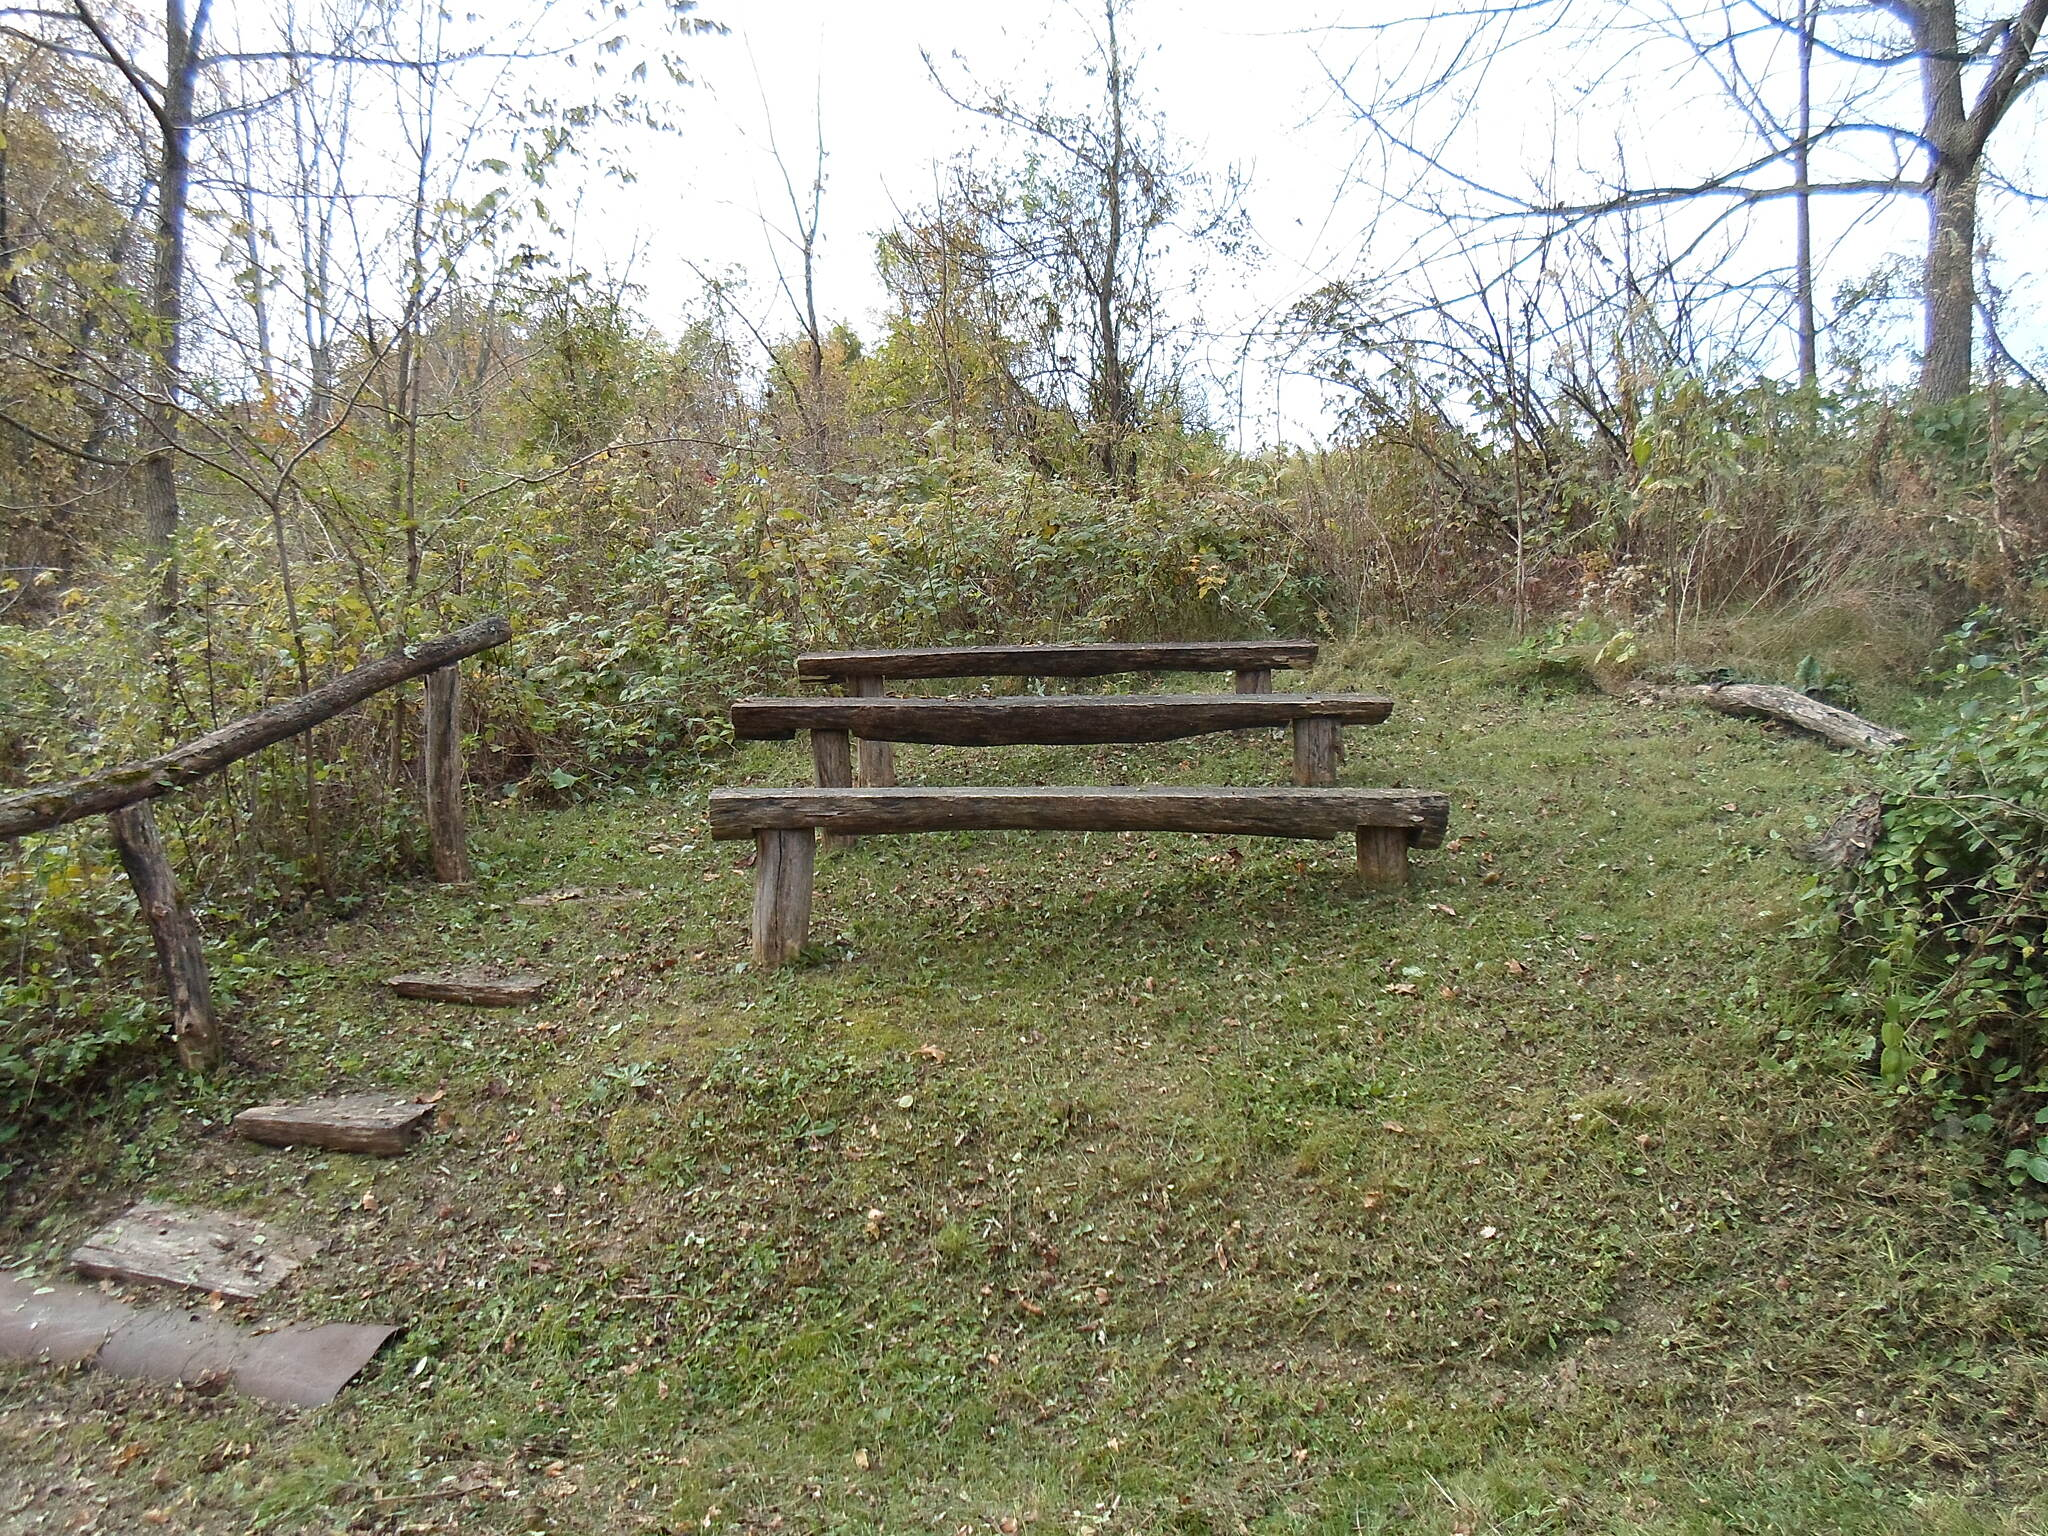 Capital Area Greenbelt Capital Area Greenbelt Mini-amphitheater off the Link Trail, where presentations on the local environment are sometimes held.